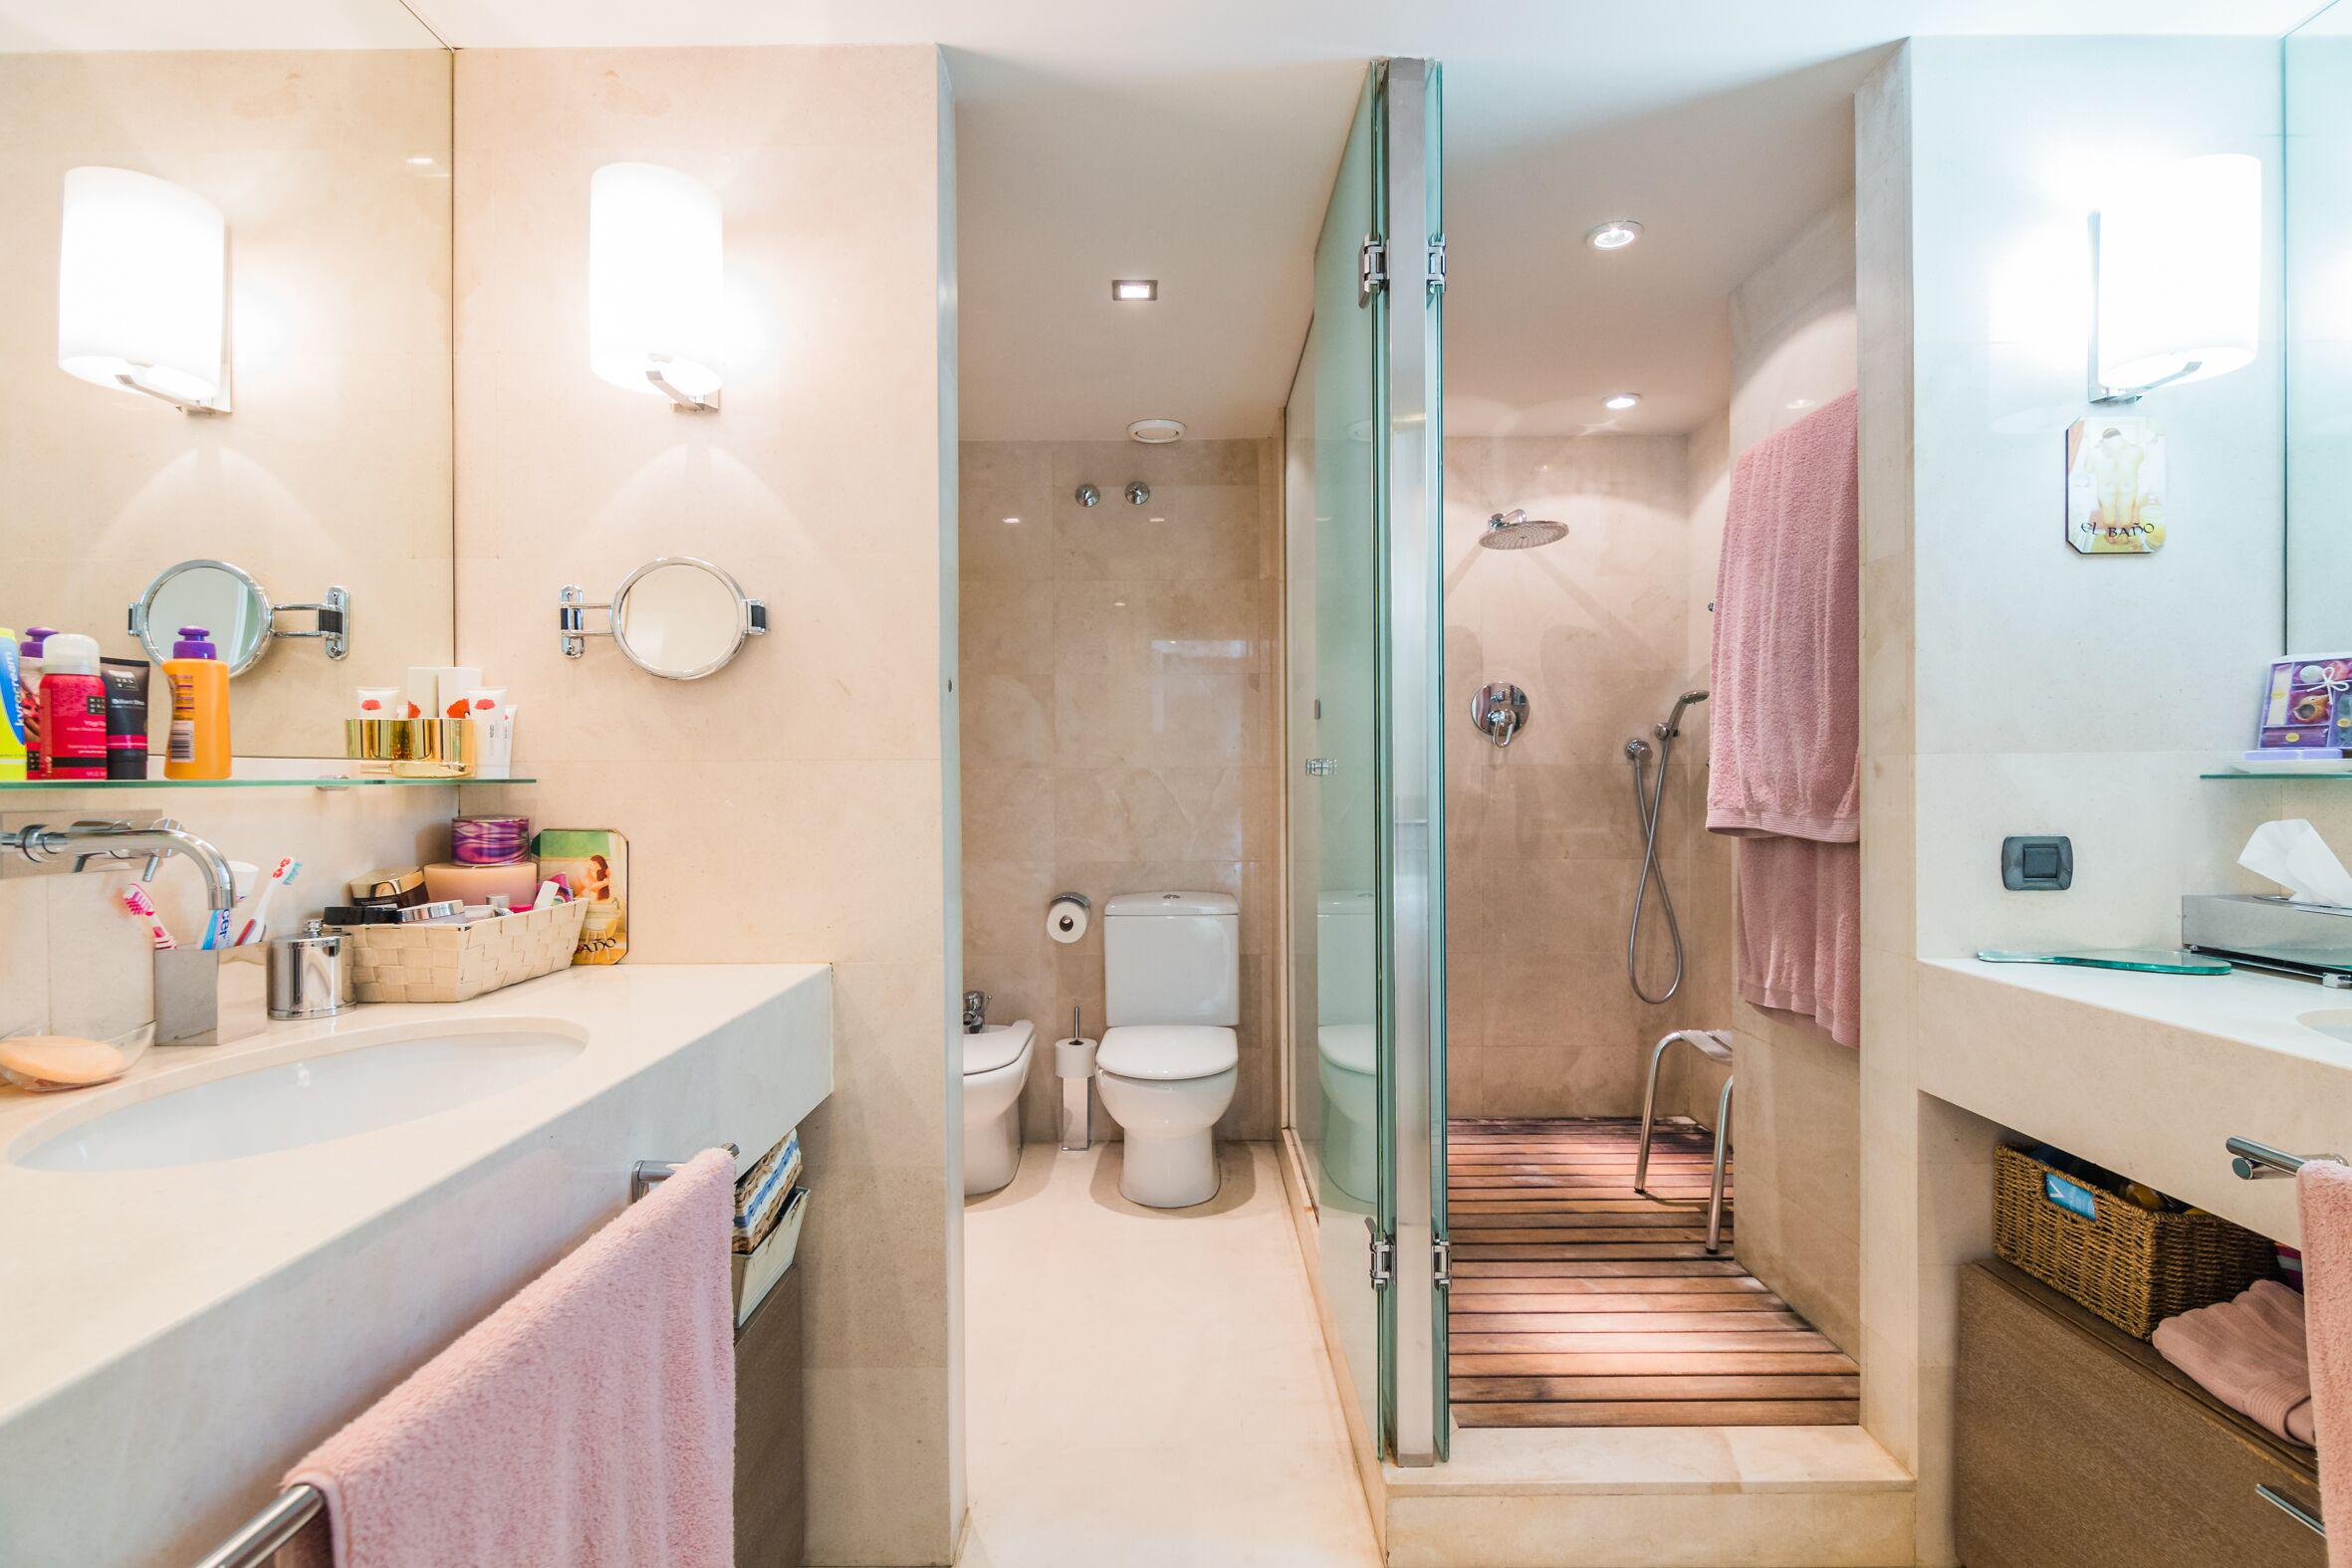 208150 Apartment for sale in Gràcia, Vallcarca and Els Penitents 30